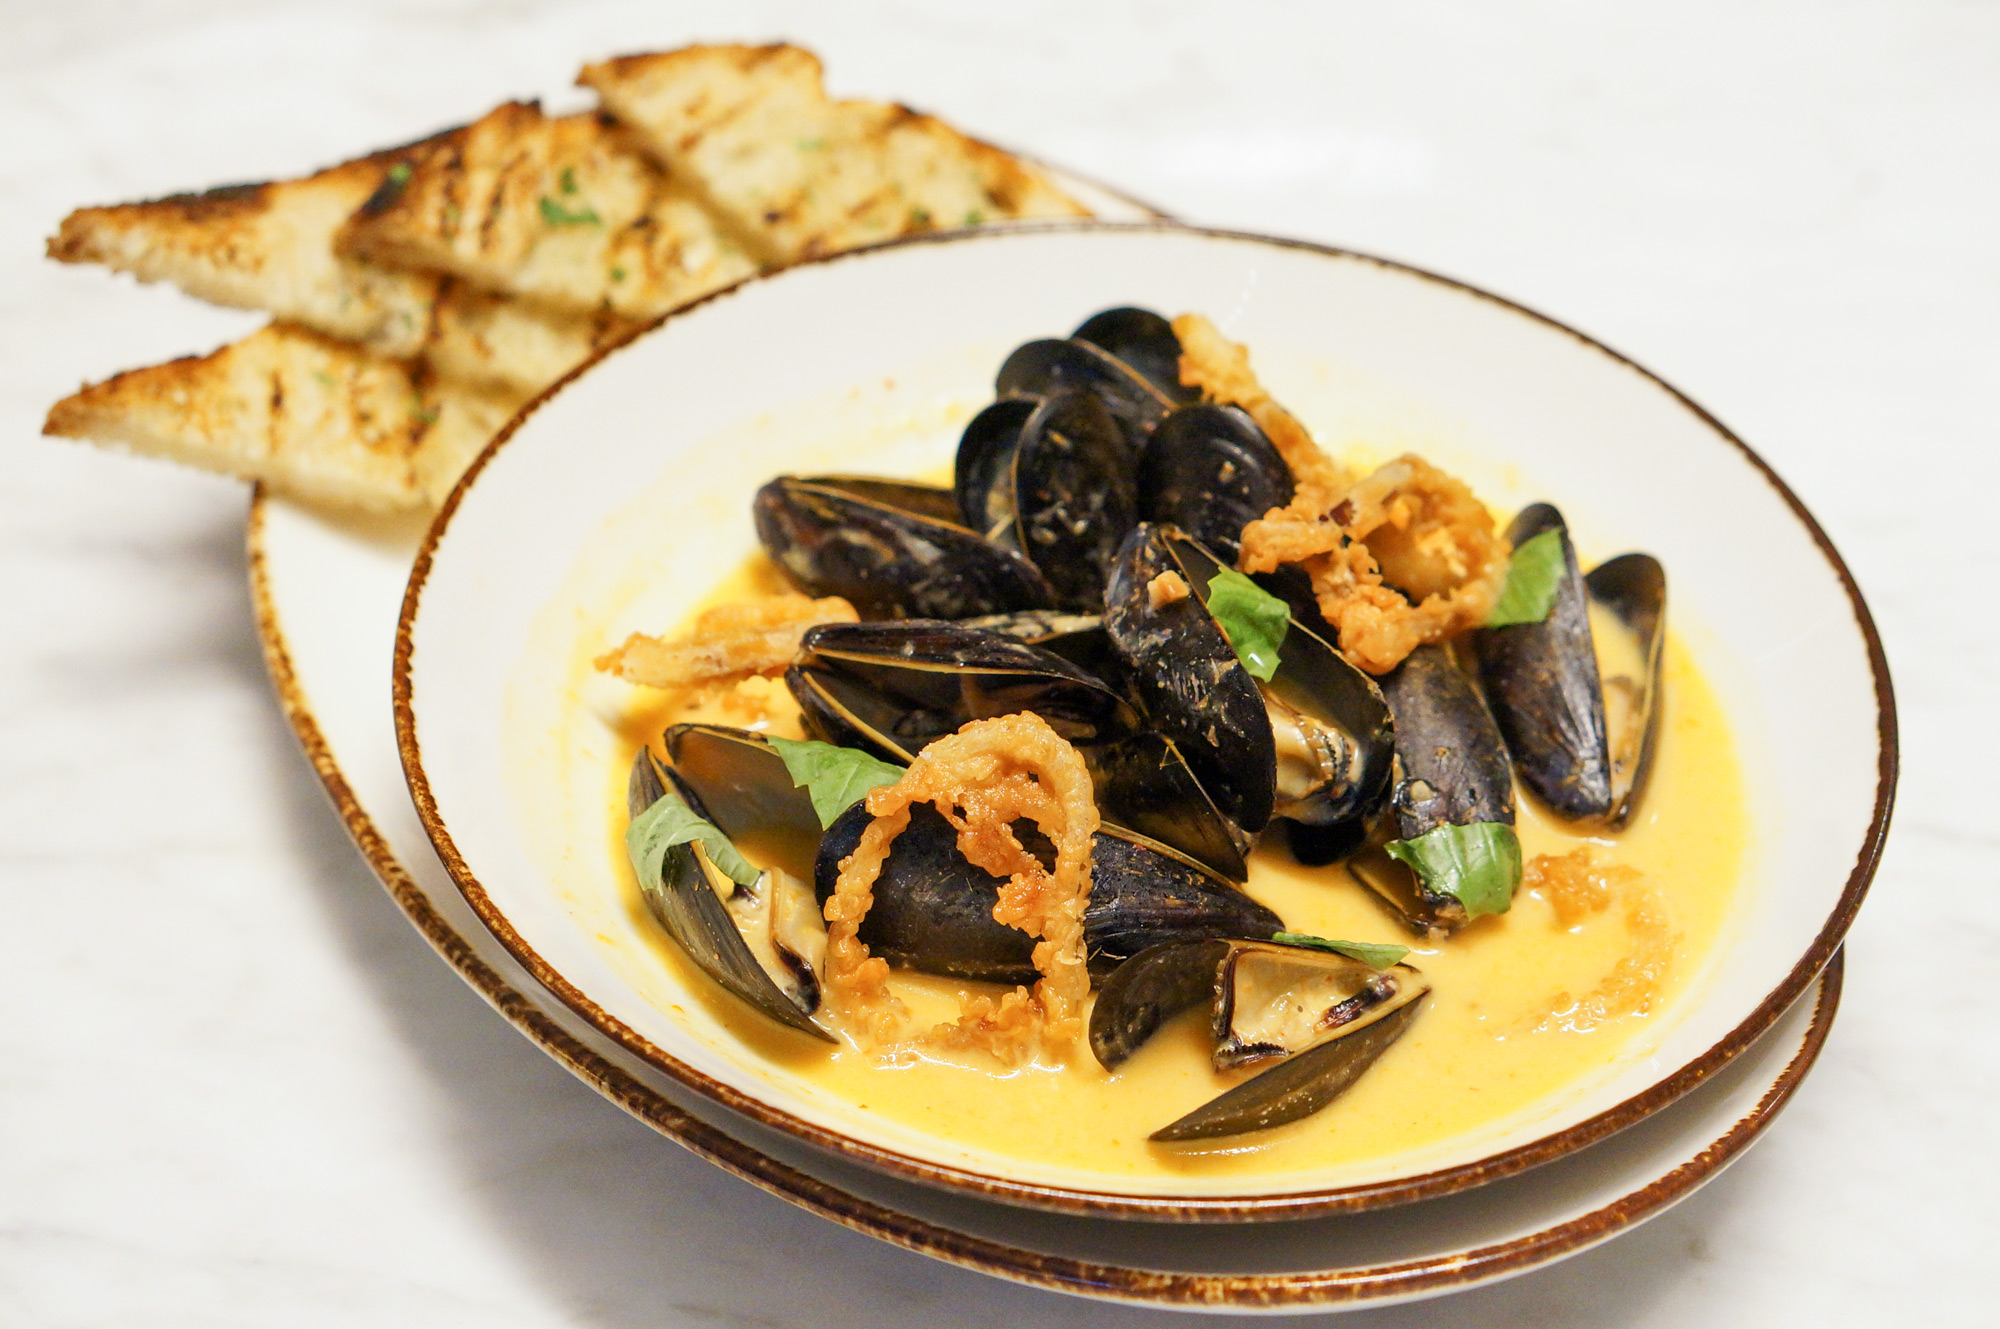 Saltwood Charcuterie & Bar Pan Roasted Mussels